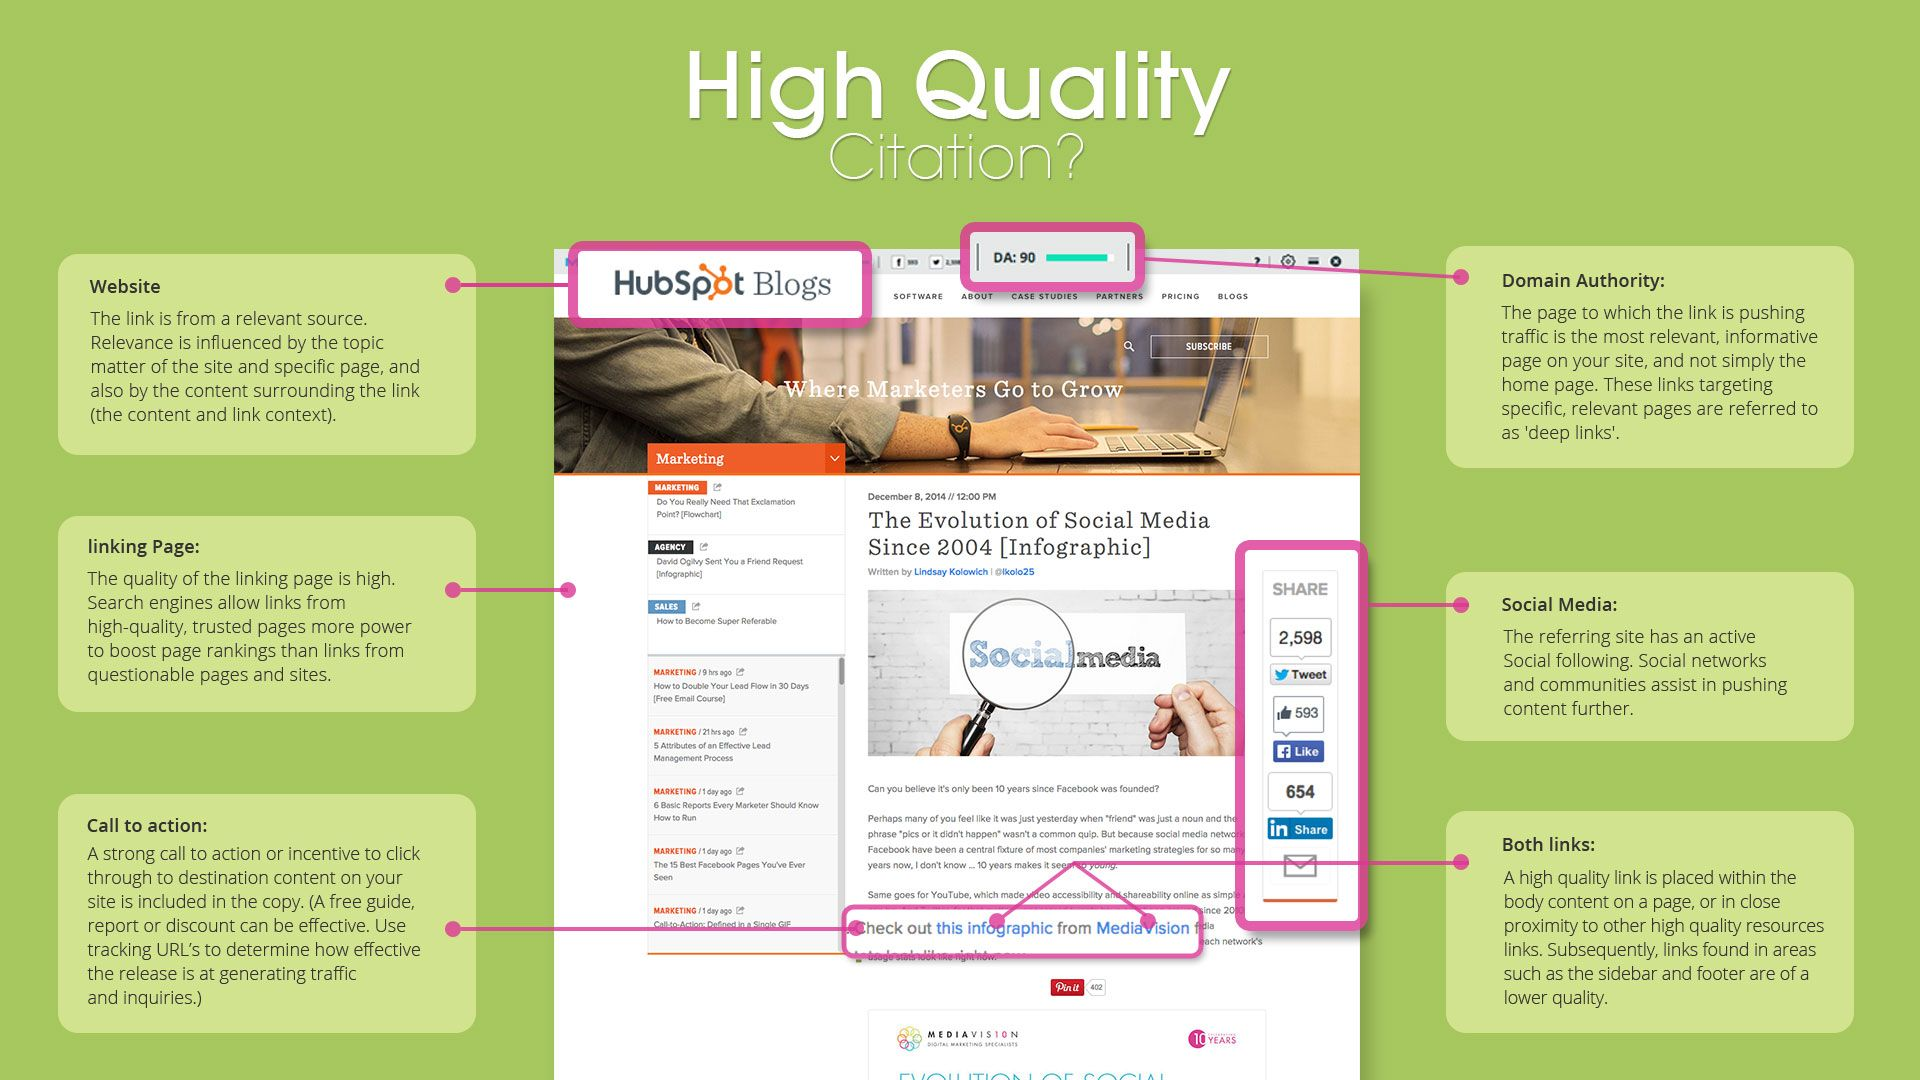 What Does a High Quality Citation Look Like?